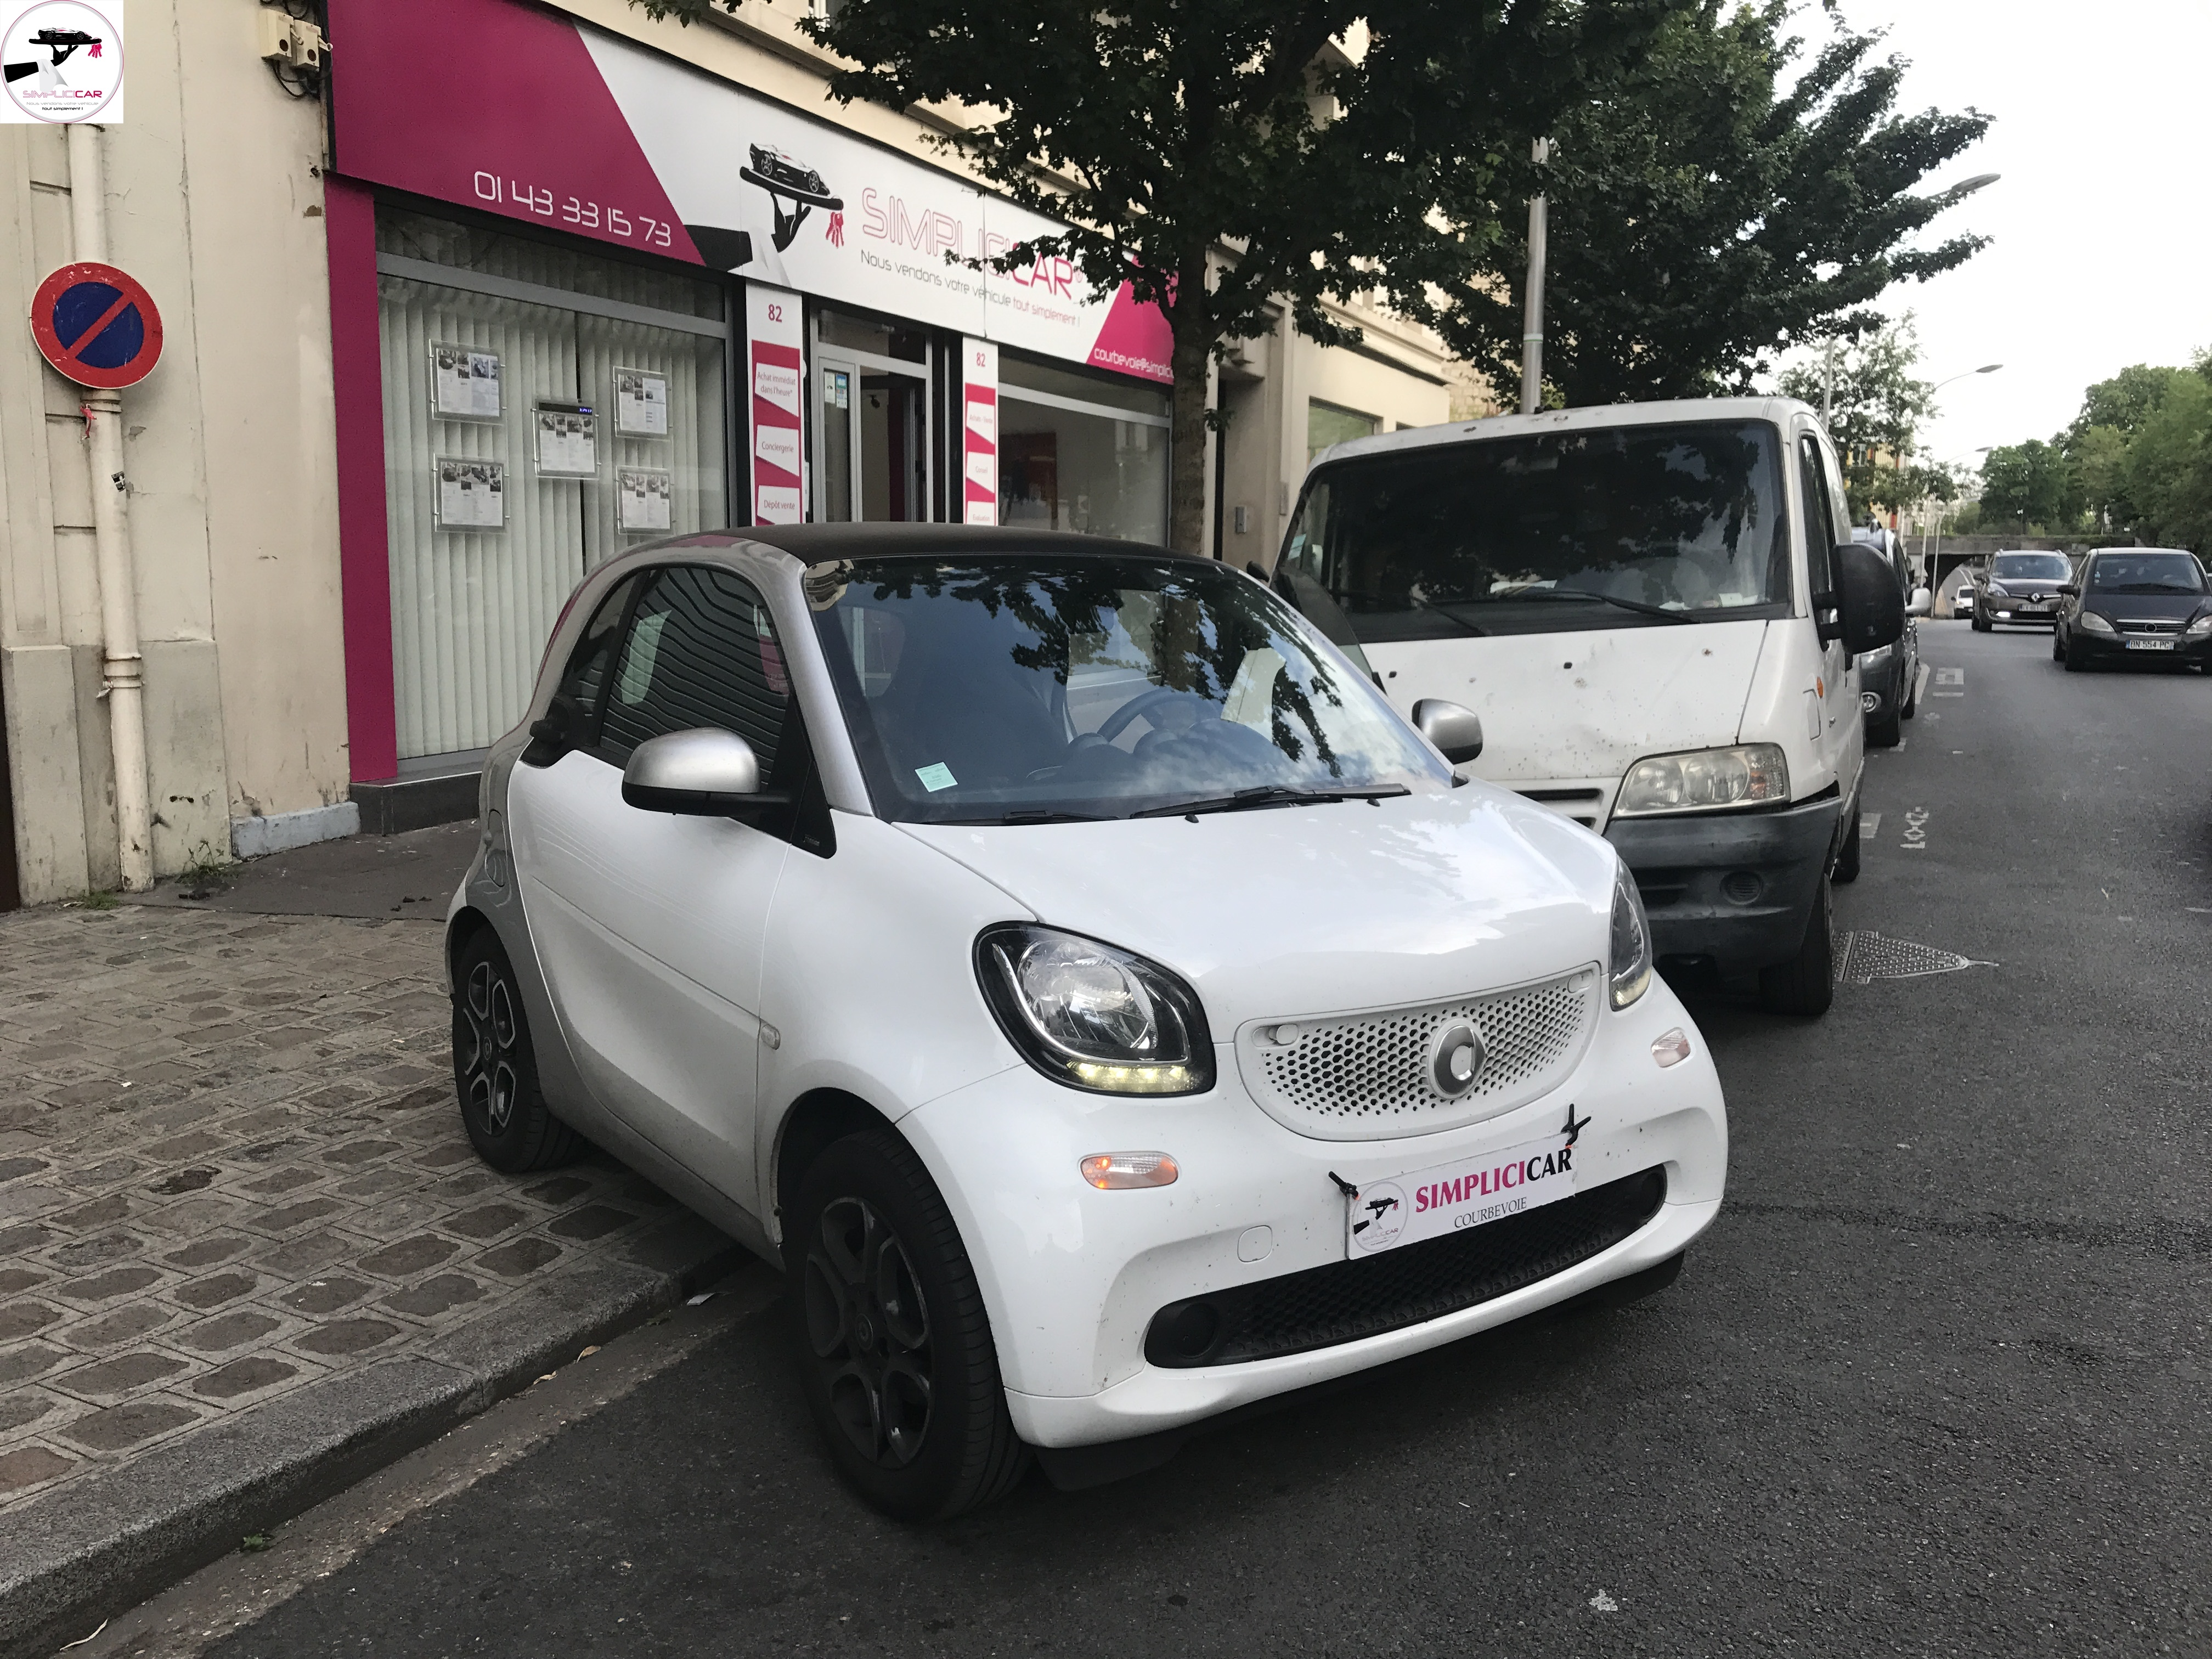 voiture smart fortwo coup 0 9 90 ch s s proxy a occasion essence 2015 35000 km 10990. Black Bedroom Furniture Sets. Home Design Ideas